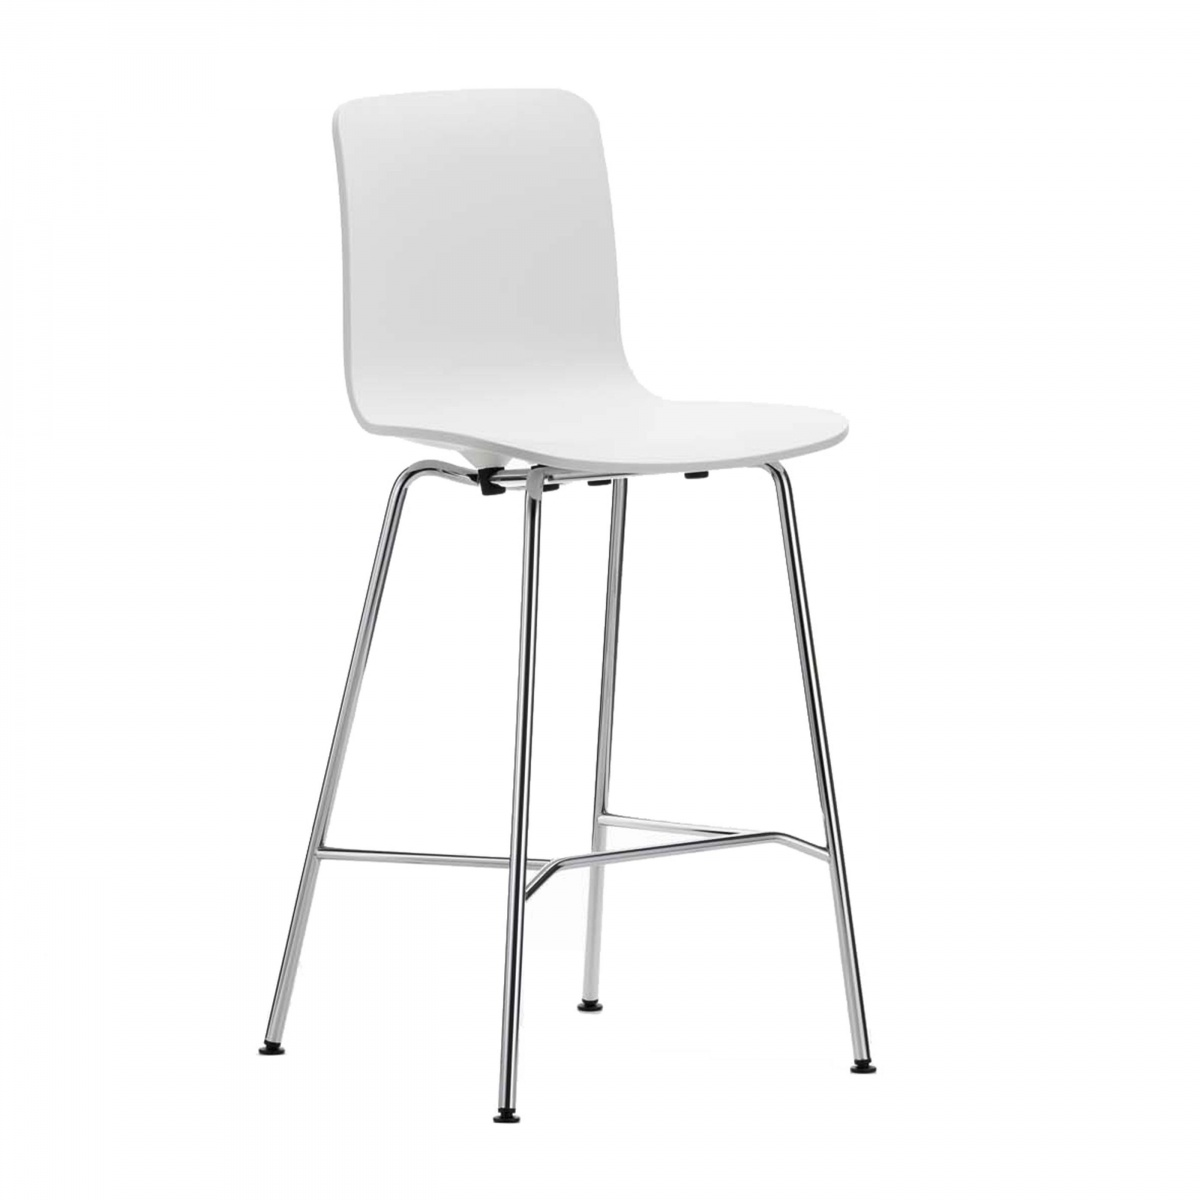 White Medium Hal Stool With Light-Coloured Metal Legs